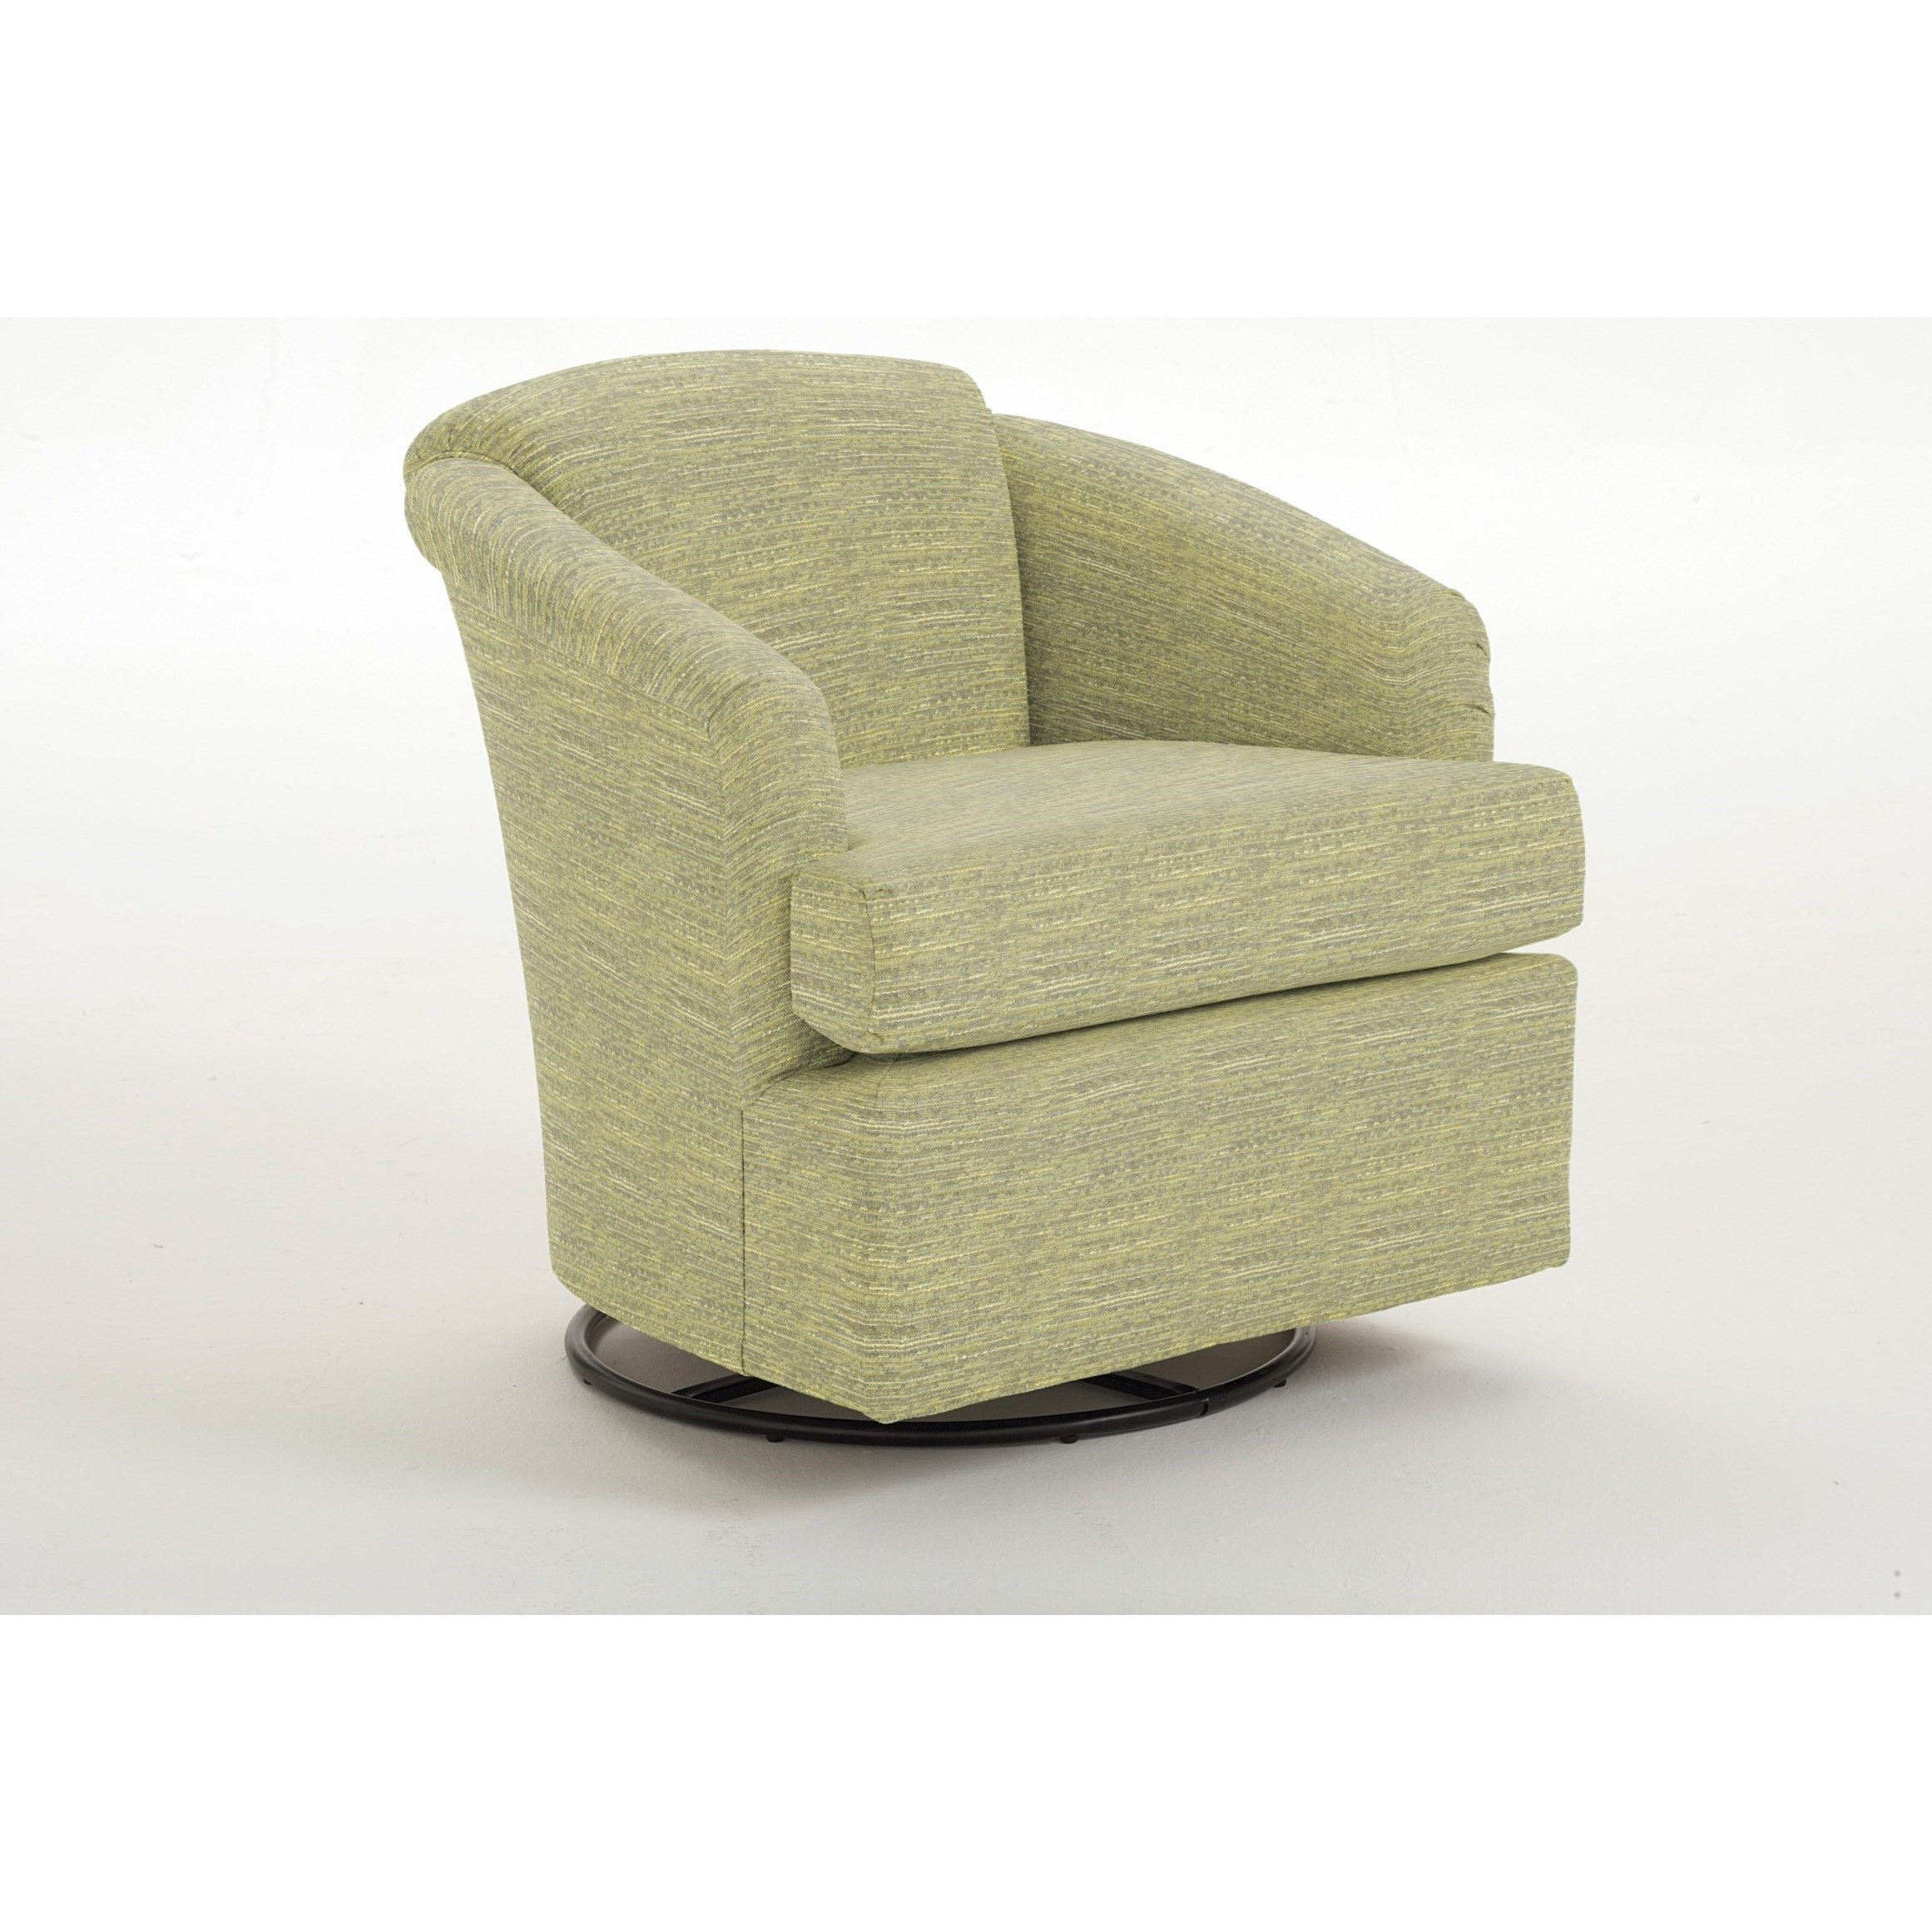 Best Home Furnishings Swivels Cass Swivel Chair - Item Number: 2568-1-21123